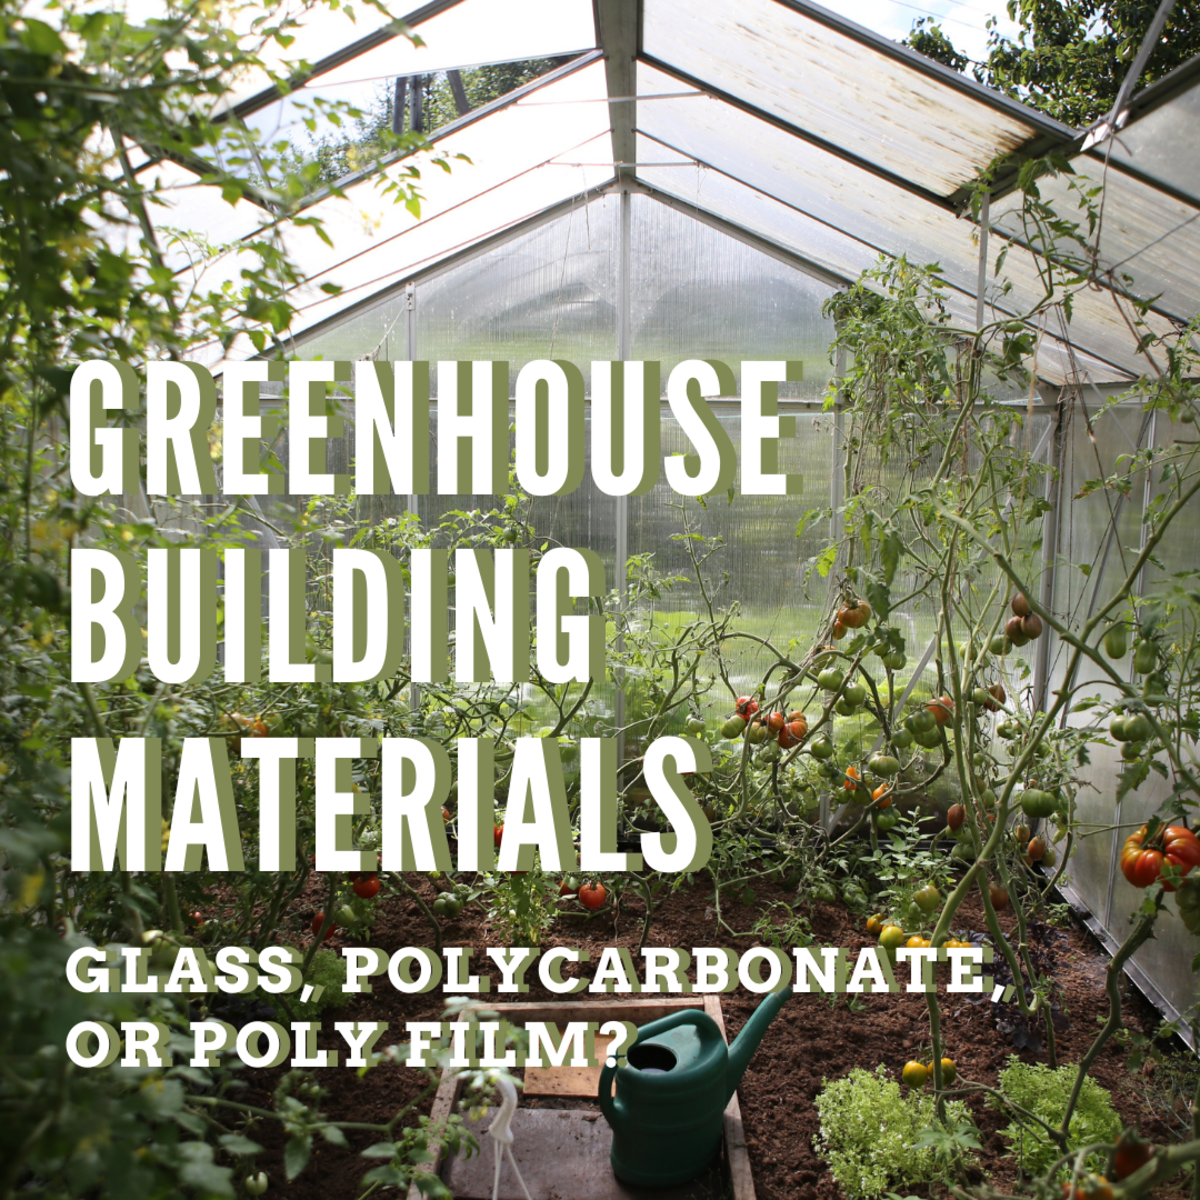 Which materials should you use to build your greenhouse?